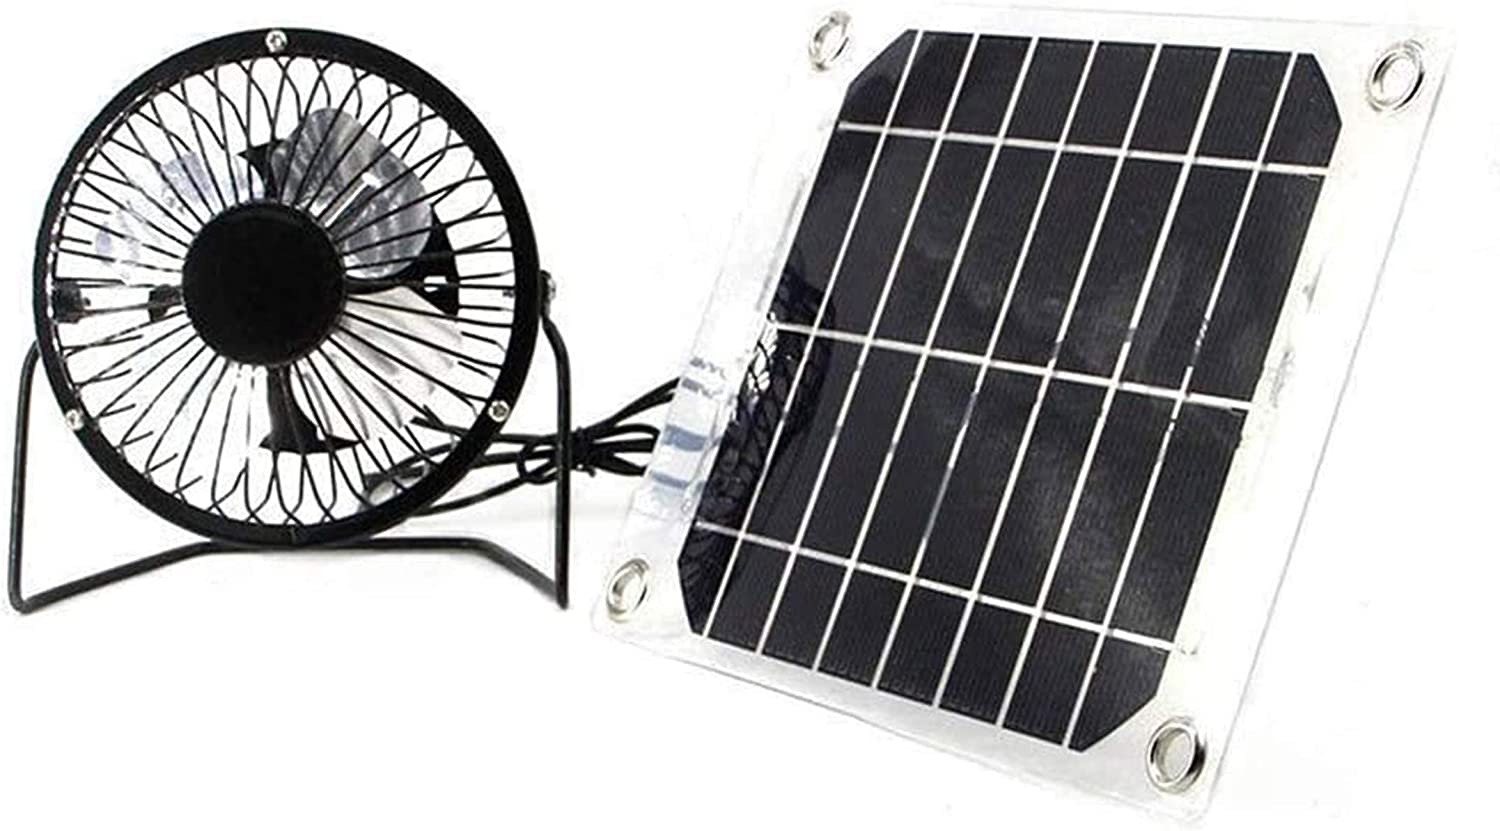 Solar Fan 6W 4 inch Free Energy for Greenhouse Motorhome House Chicken House Outdoor Home Cooling Chicken coop USB fan